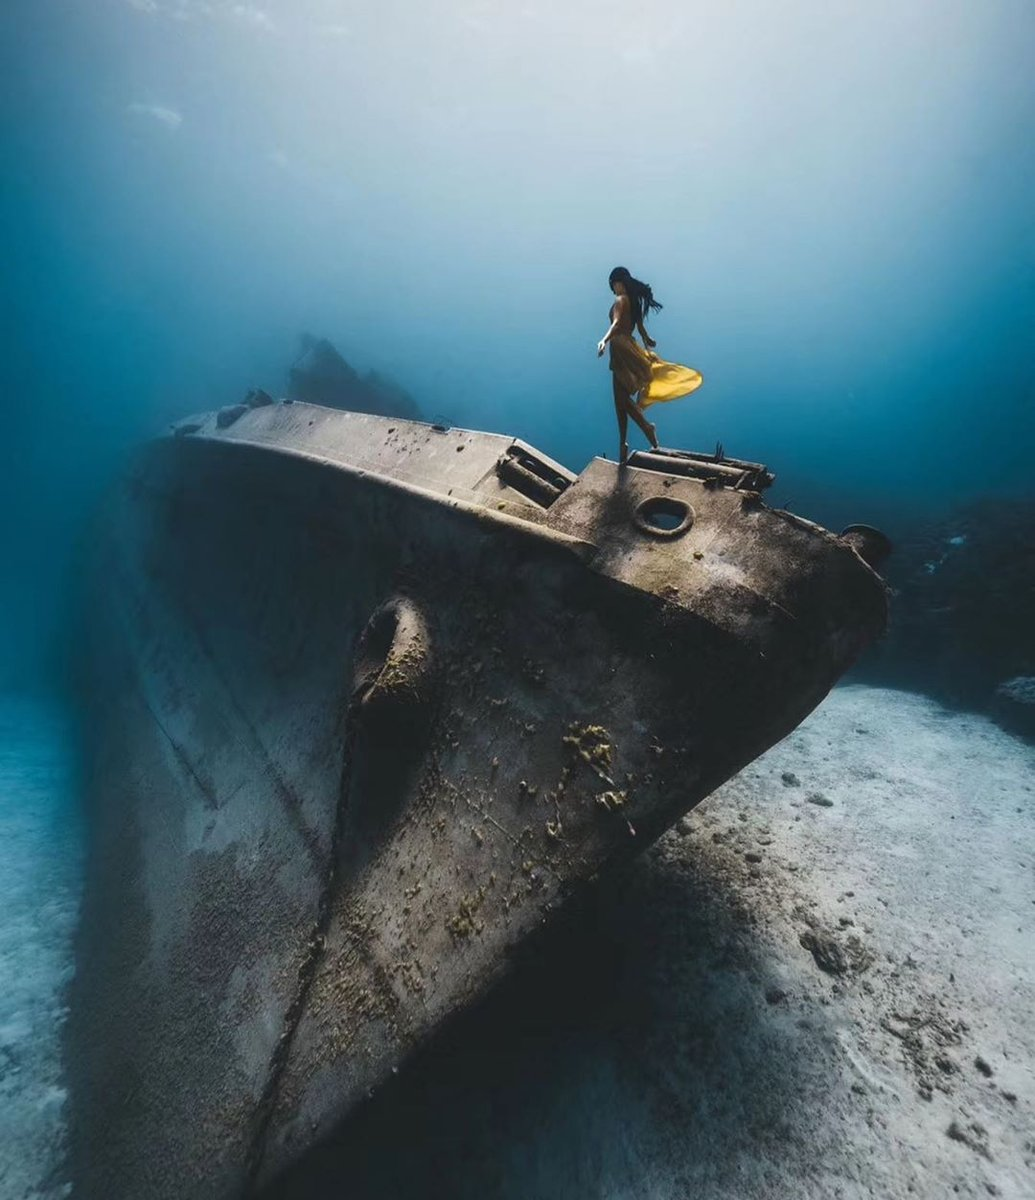 follow us for more visit @freedivinguae⁠ http://freedivinguae.com ⁠ @apnea.pirates⁠ Repost@cuishuolivia0126 #diving #freedive #adventure #ocean #apnea #scuba #freediver #sea #scubadiving #diver #sealife #deeperblue #protectocean #underwaterlife #onebreath #oceanvibes #divinglifepic.twitter.com/TPEBMncstG